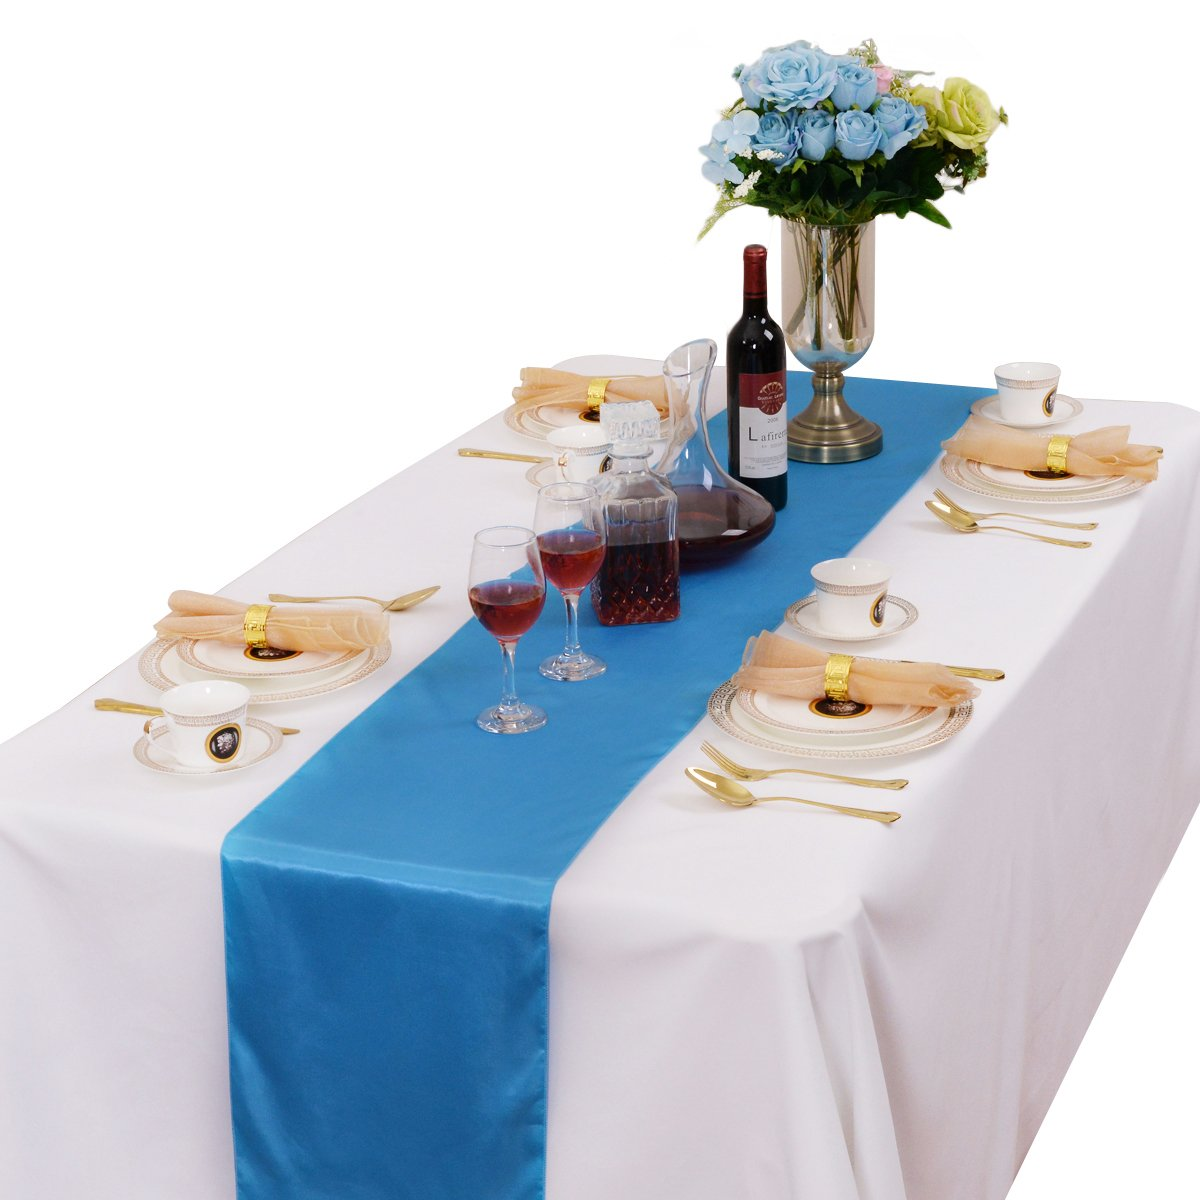 LOVWY Pack Of 20 Satin Table Runner 12 x 108 Inch For Wedding Party Engagement Event Birthday Graduation Banquet Decoration (Colors Optional) (Baby Blue)